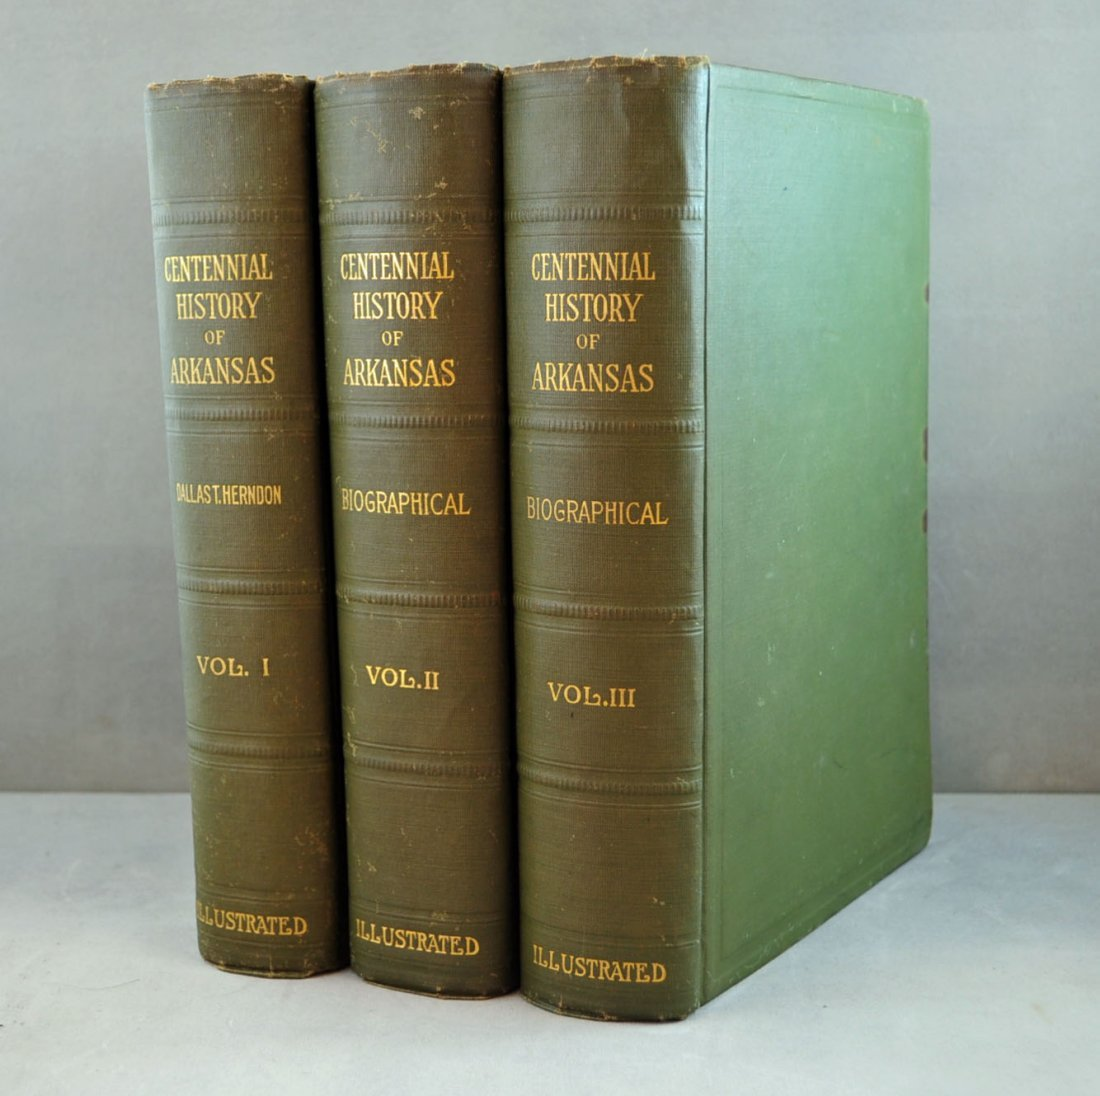 Centennial History of Arkansas 3 Vol. Set